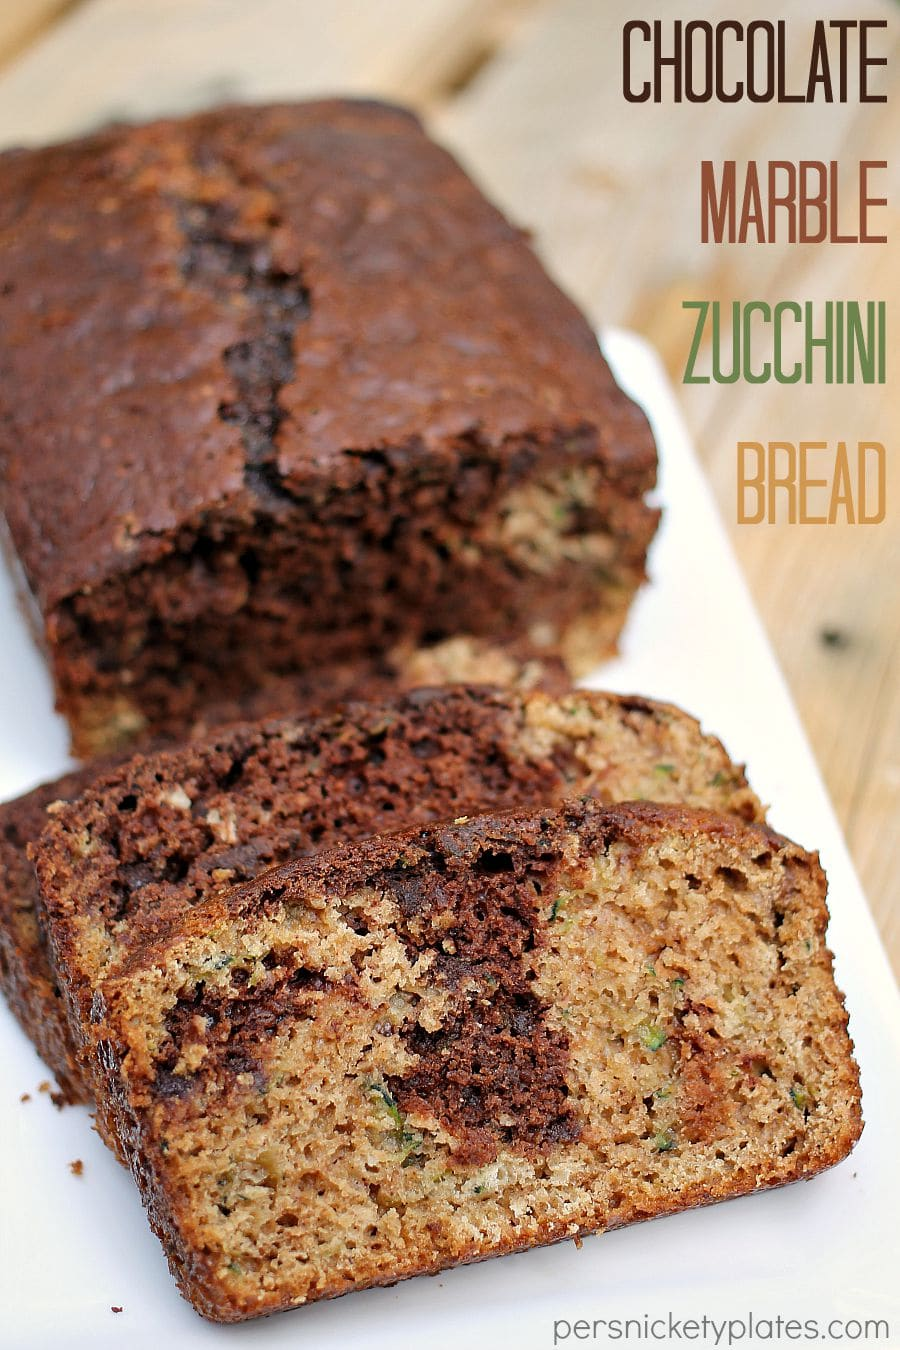 Chocolate Marble Zucchini Bread - give classic zucchini bread an upgrade when you swirl in chocolate batter and mini chocolate chips! | www.persnicketyplates.com